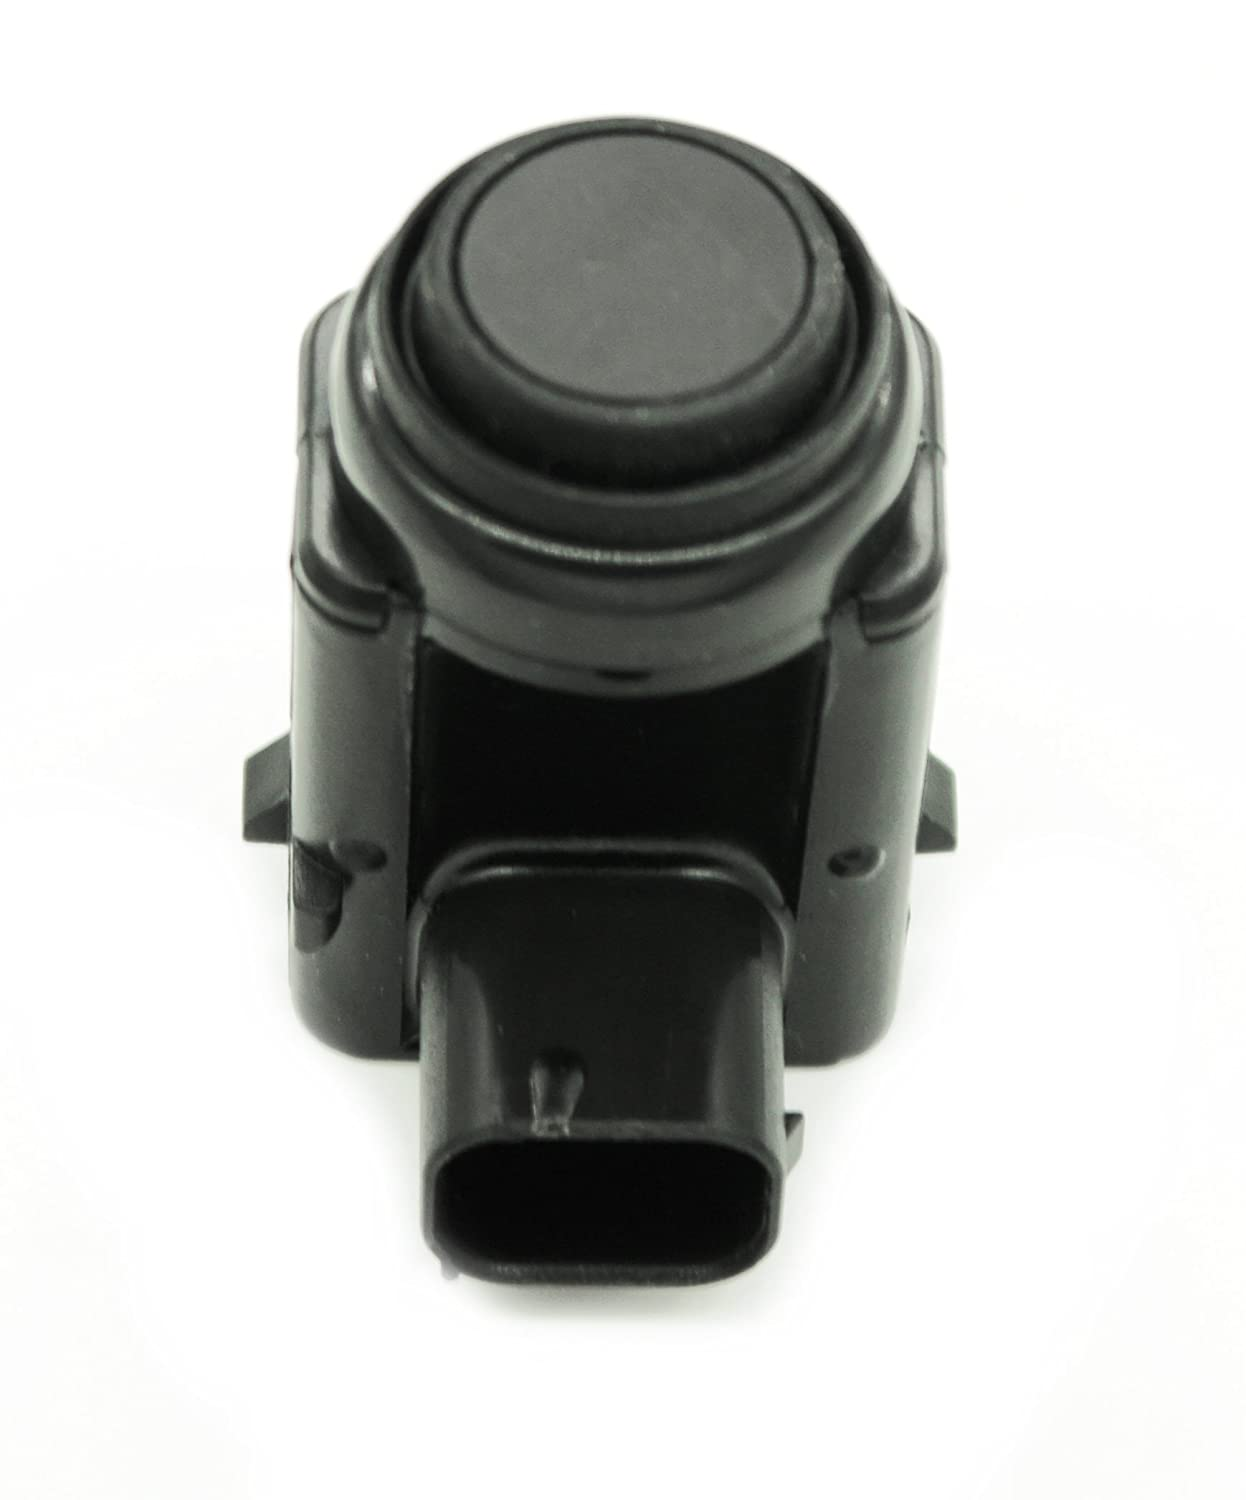 Electronicx Auto PDC Parksensor Ultraschall Sensor Parktronic Parksensoren Parkhilfe Parkassistent 93172012